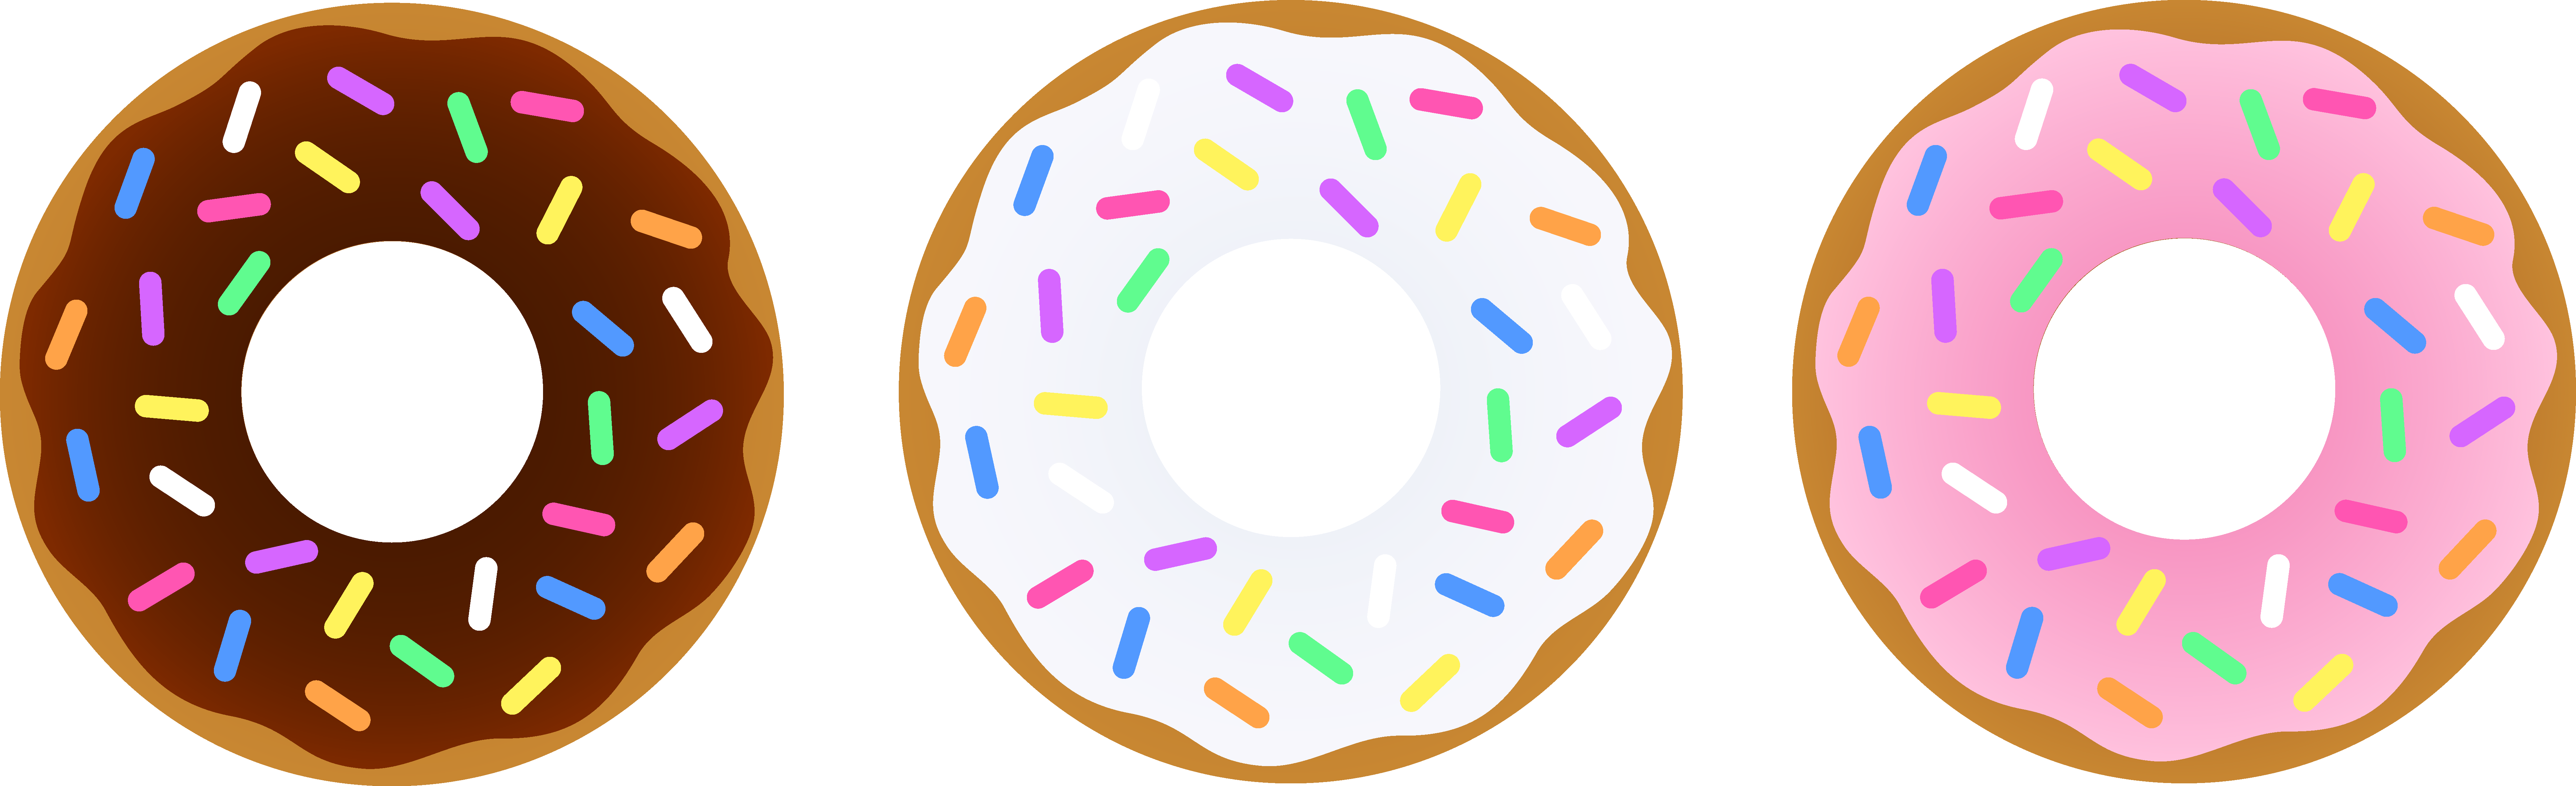 Donuts Clipart & Donuts Clip Art Images.